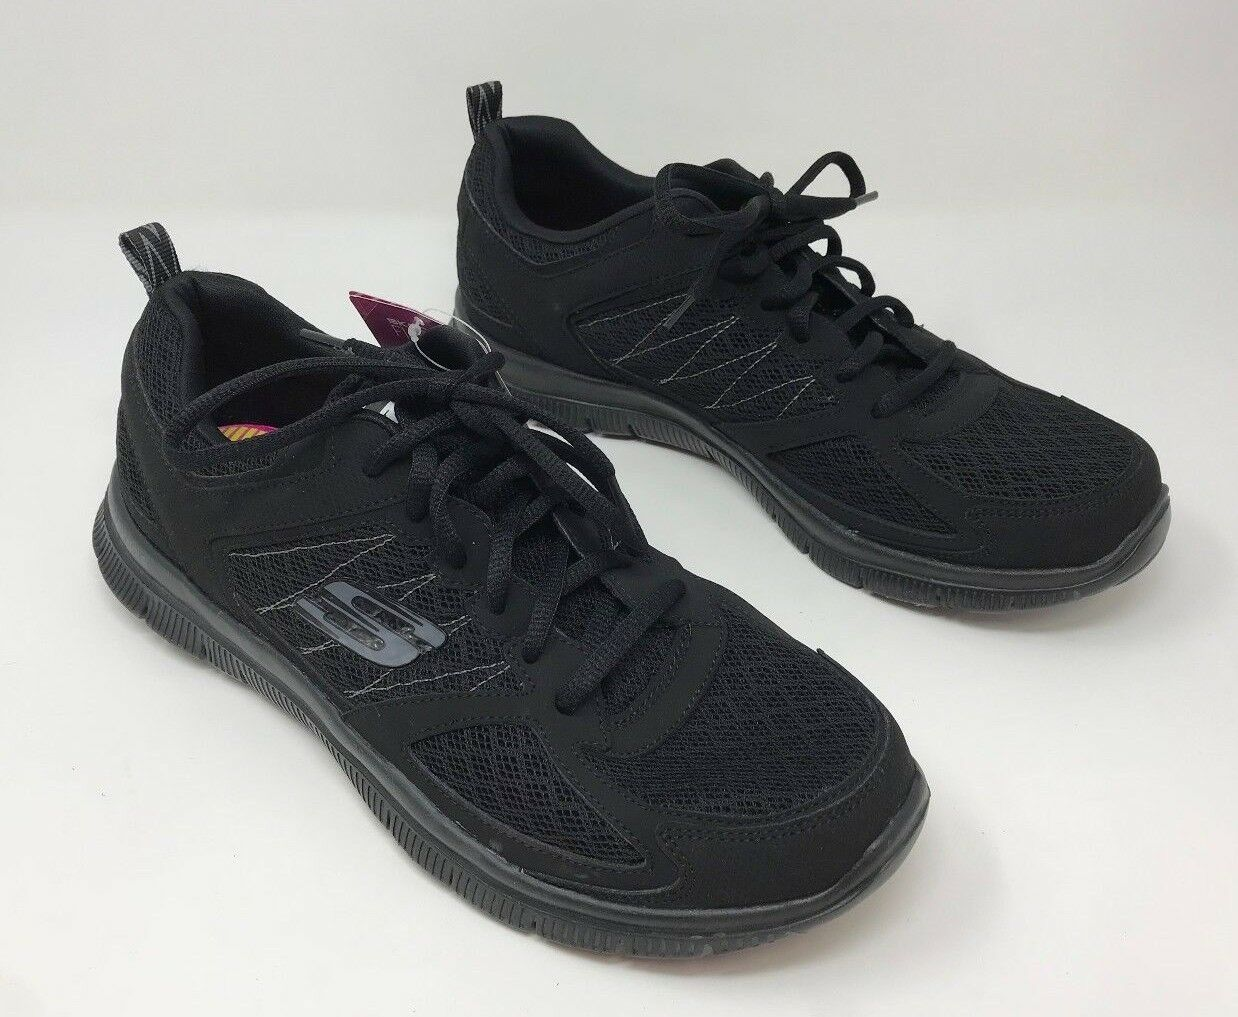 New  Women's Skechers 12452 Flex Appeal - Epicenter Athletic shoes Black C7